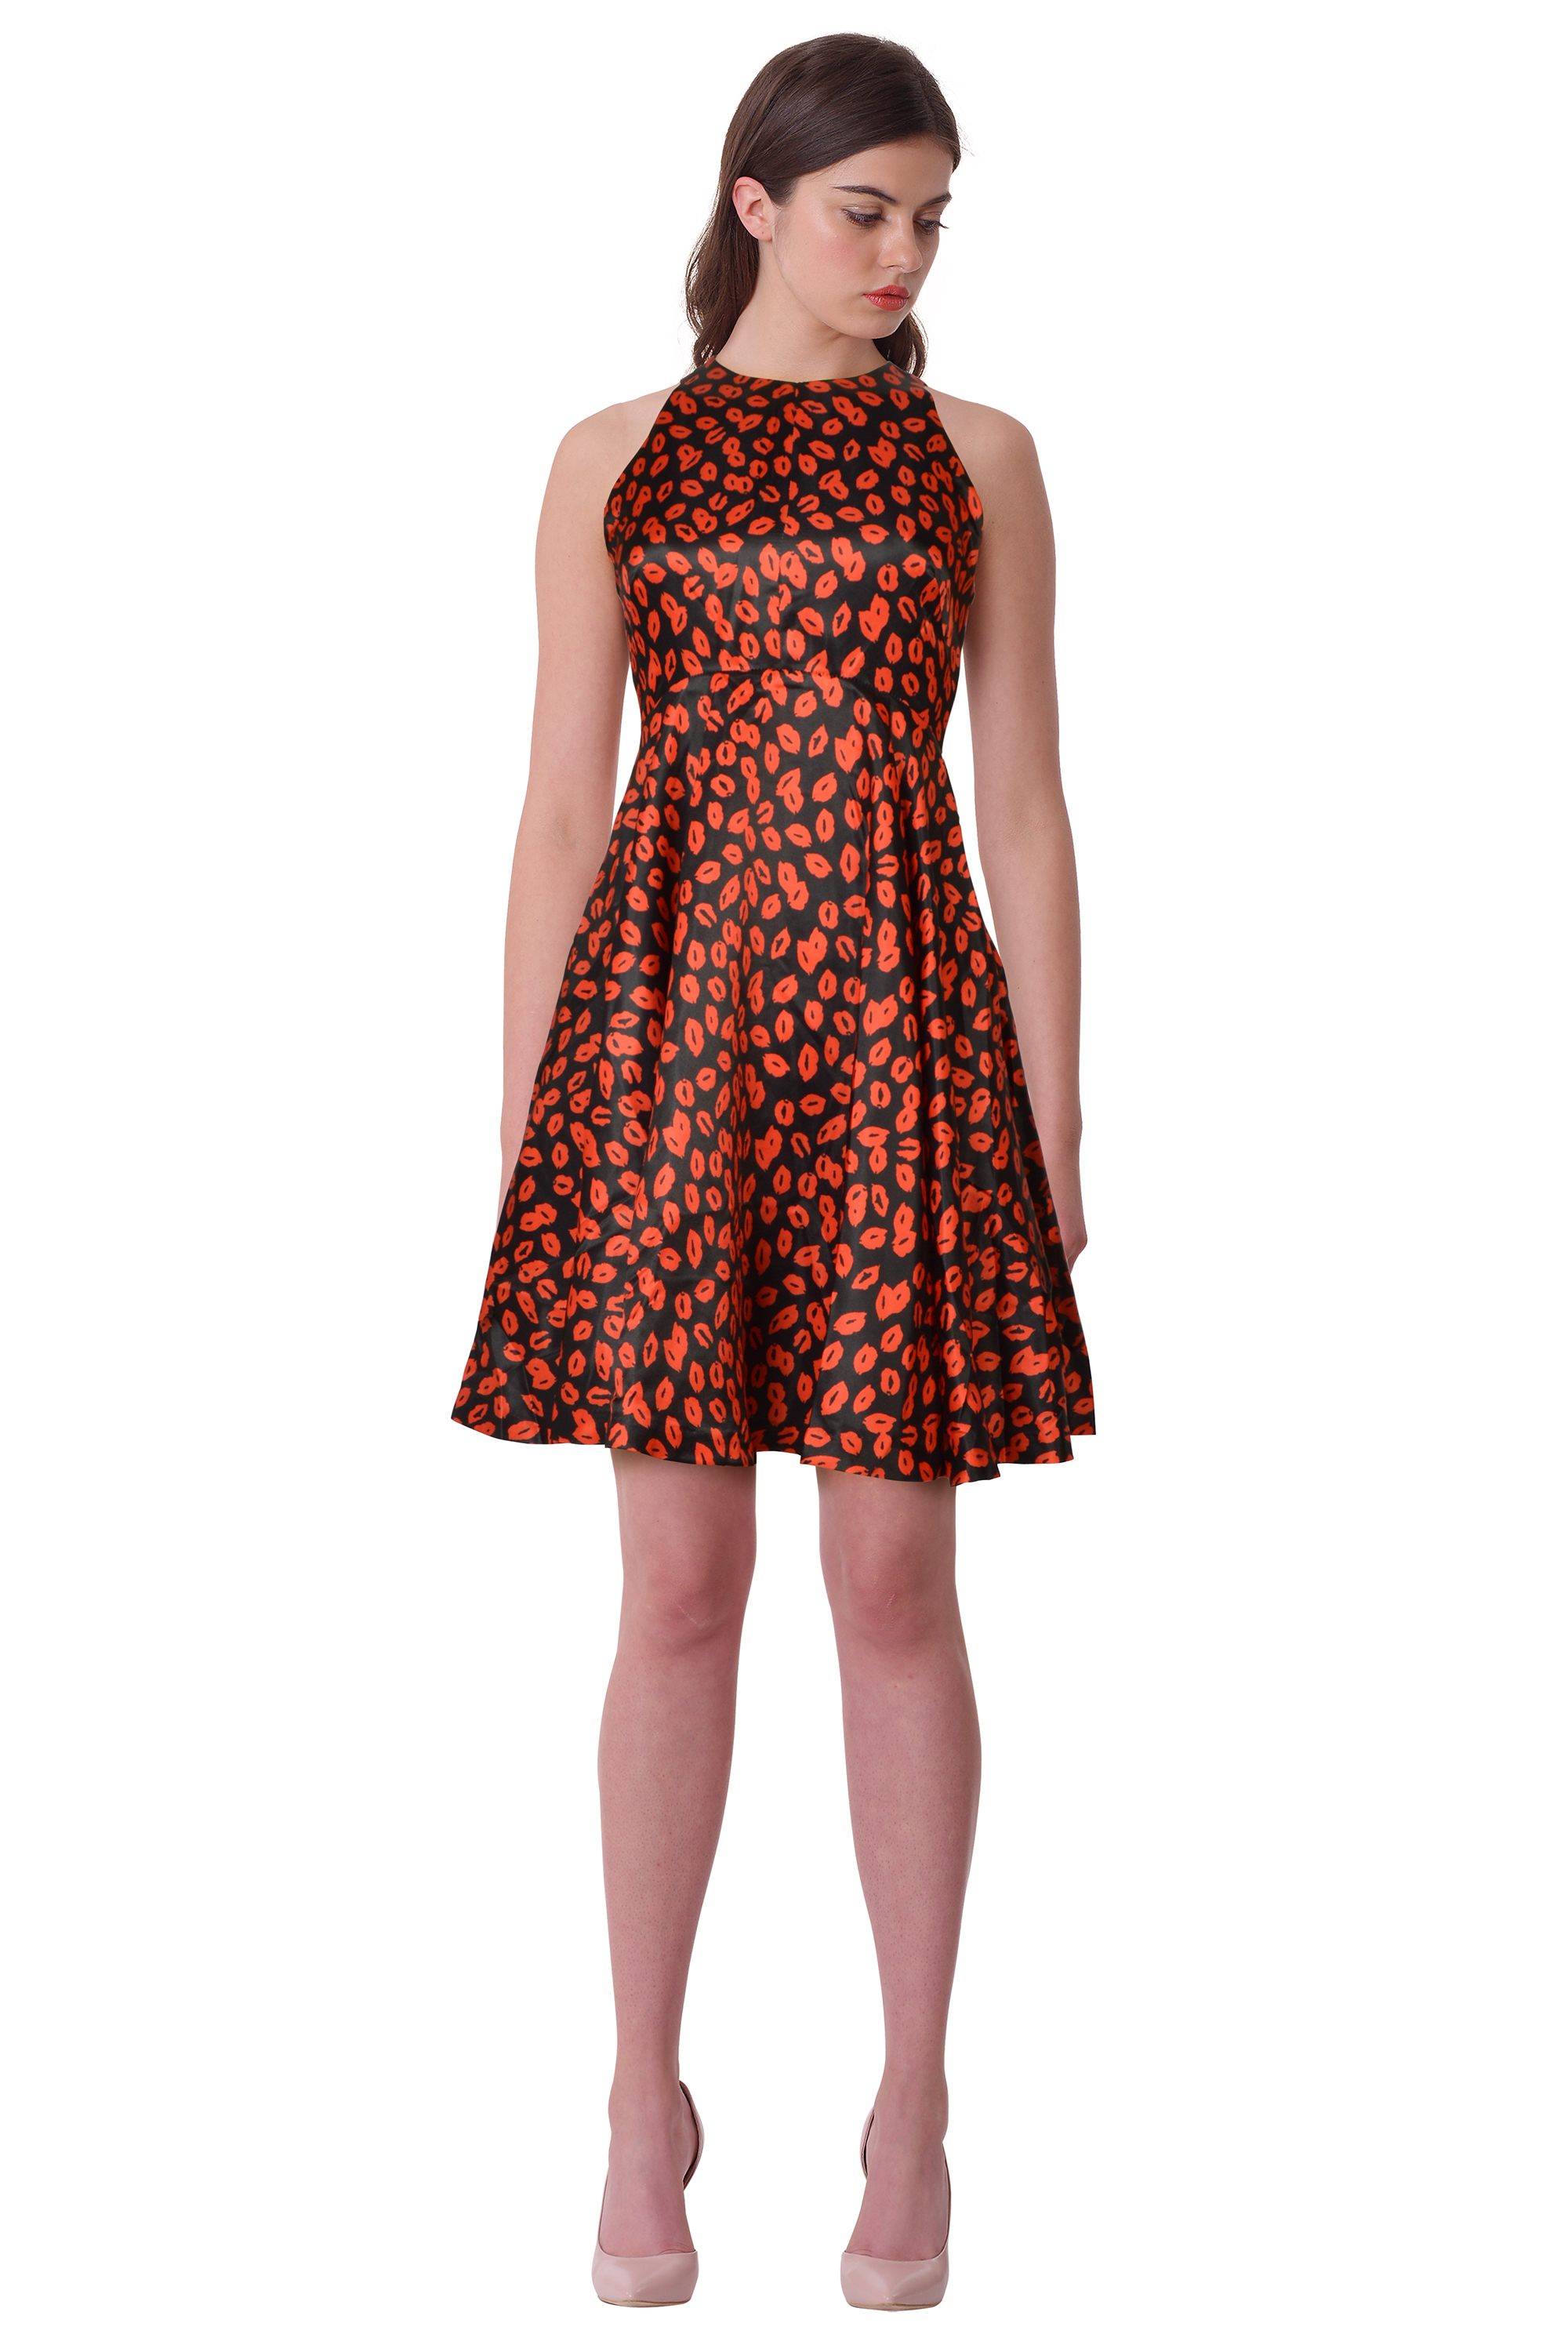 Details about RED Isabel by Isabel Garcia Red Kiss Print Flared Cocktail Evening Party Dress S